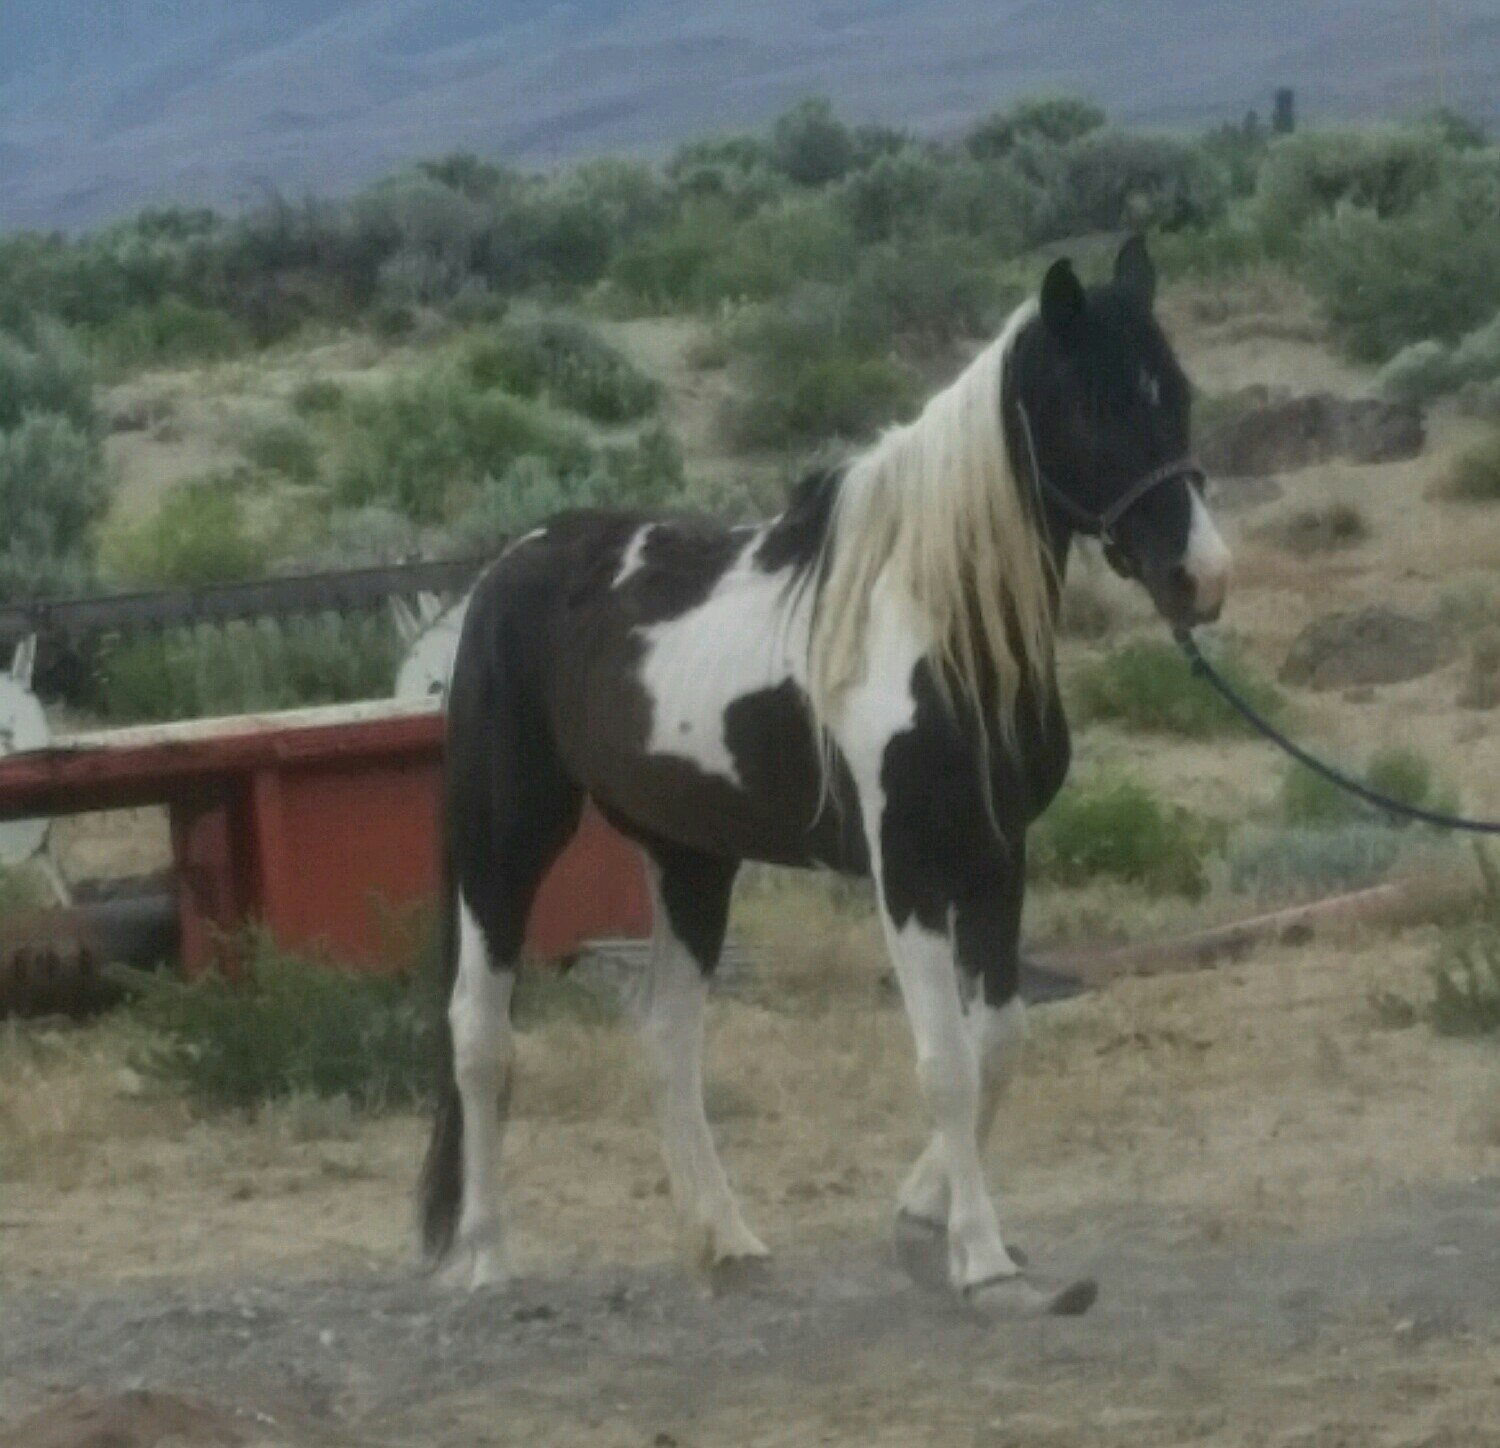 Misty is the only horse CEOCW has been able to save through the owner's written consent. One of their other horses ran away before volunteers arrived. The third, did not make it.